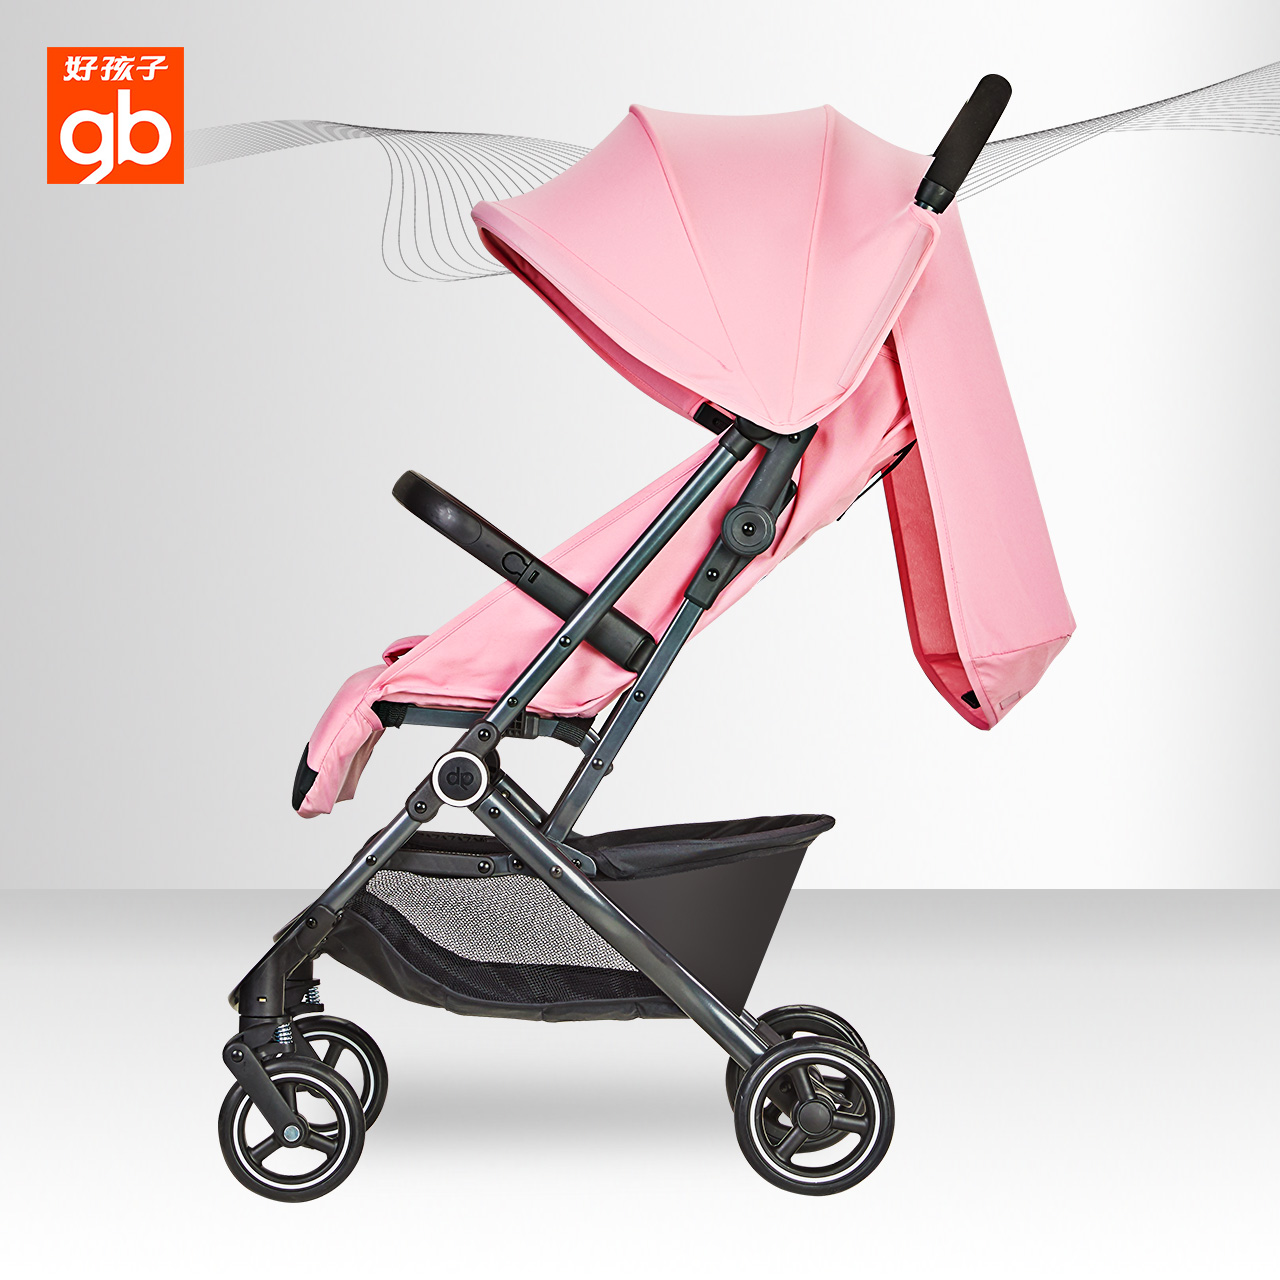 Baby Buggy Mercedes Goodbaby Brand Baby Stroller Safety Car Children Ultra Light